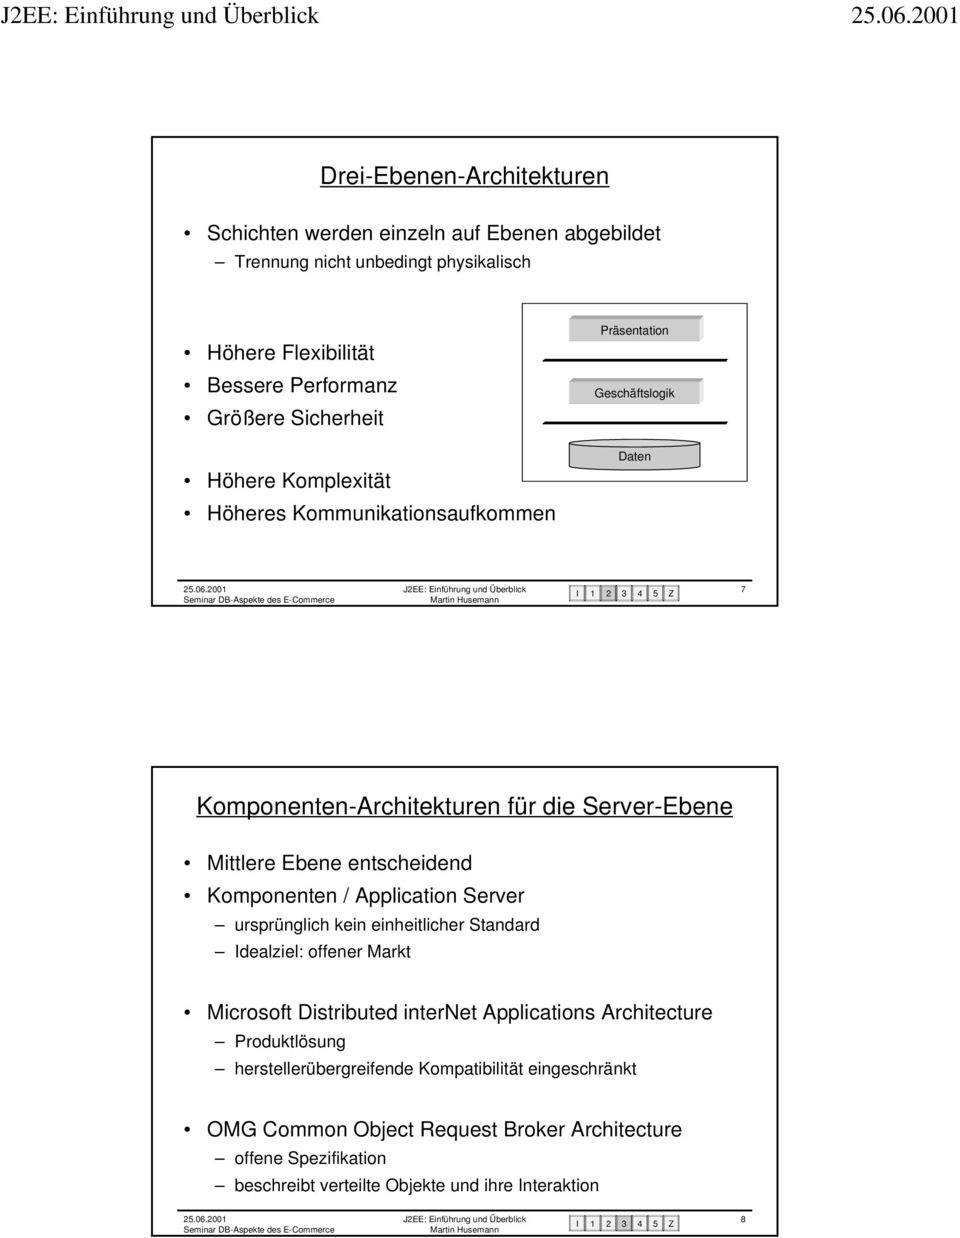 entscheidend omponenten / Application Server ursprünglich kein einheitlicher Standard Idealziel: offener Markt Microsoft Distributed internet Applications